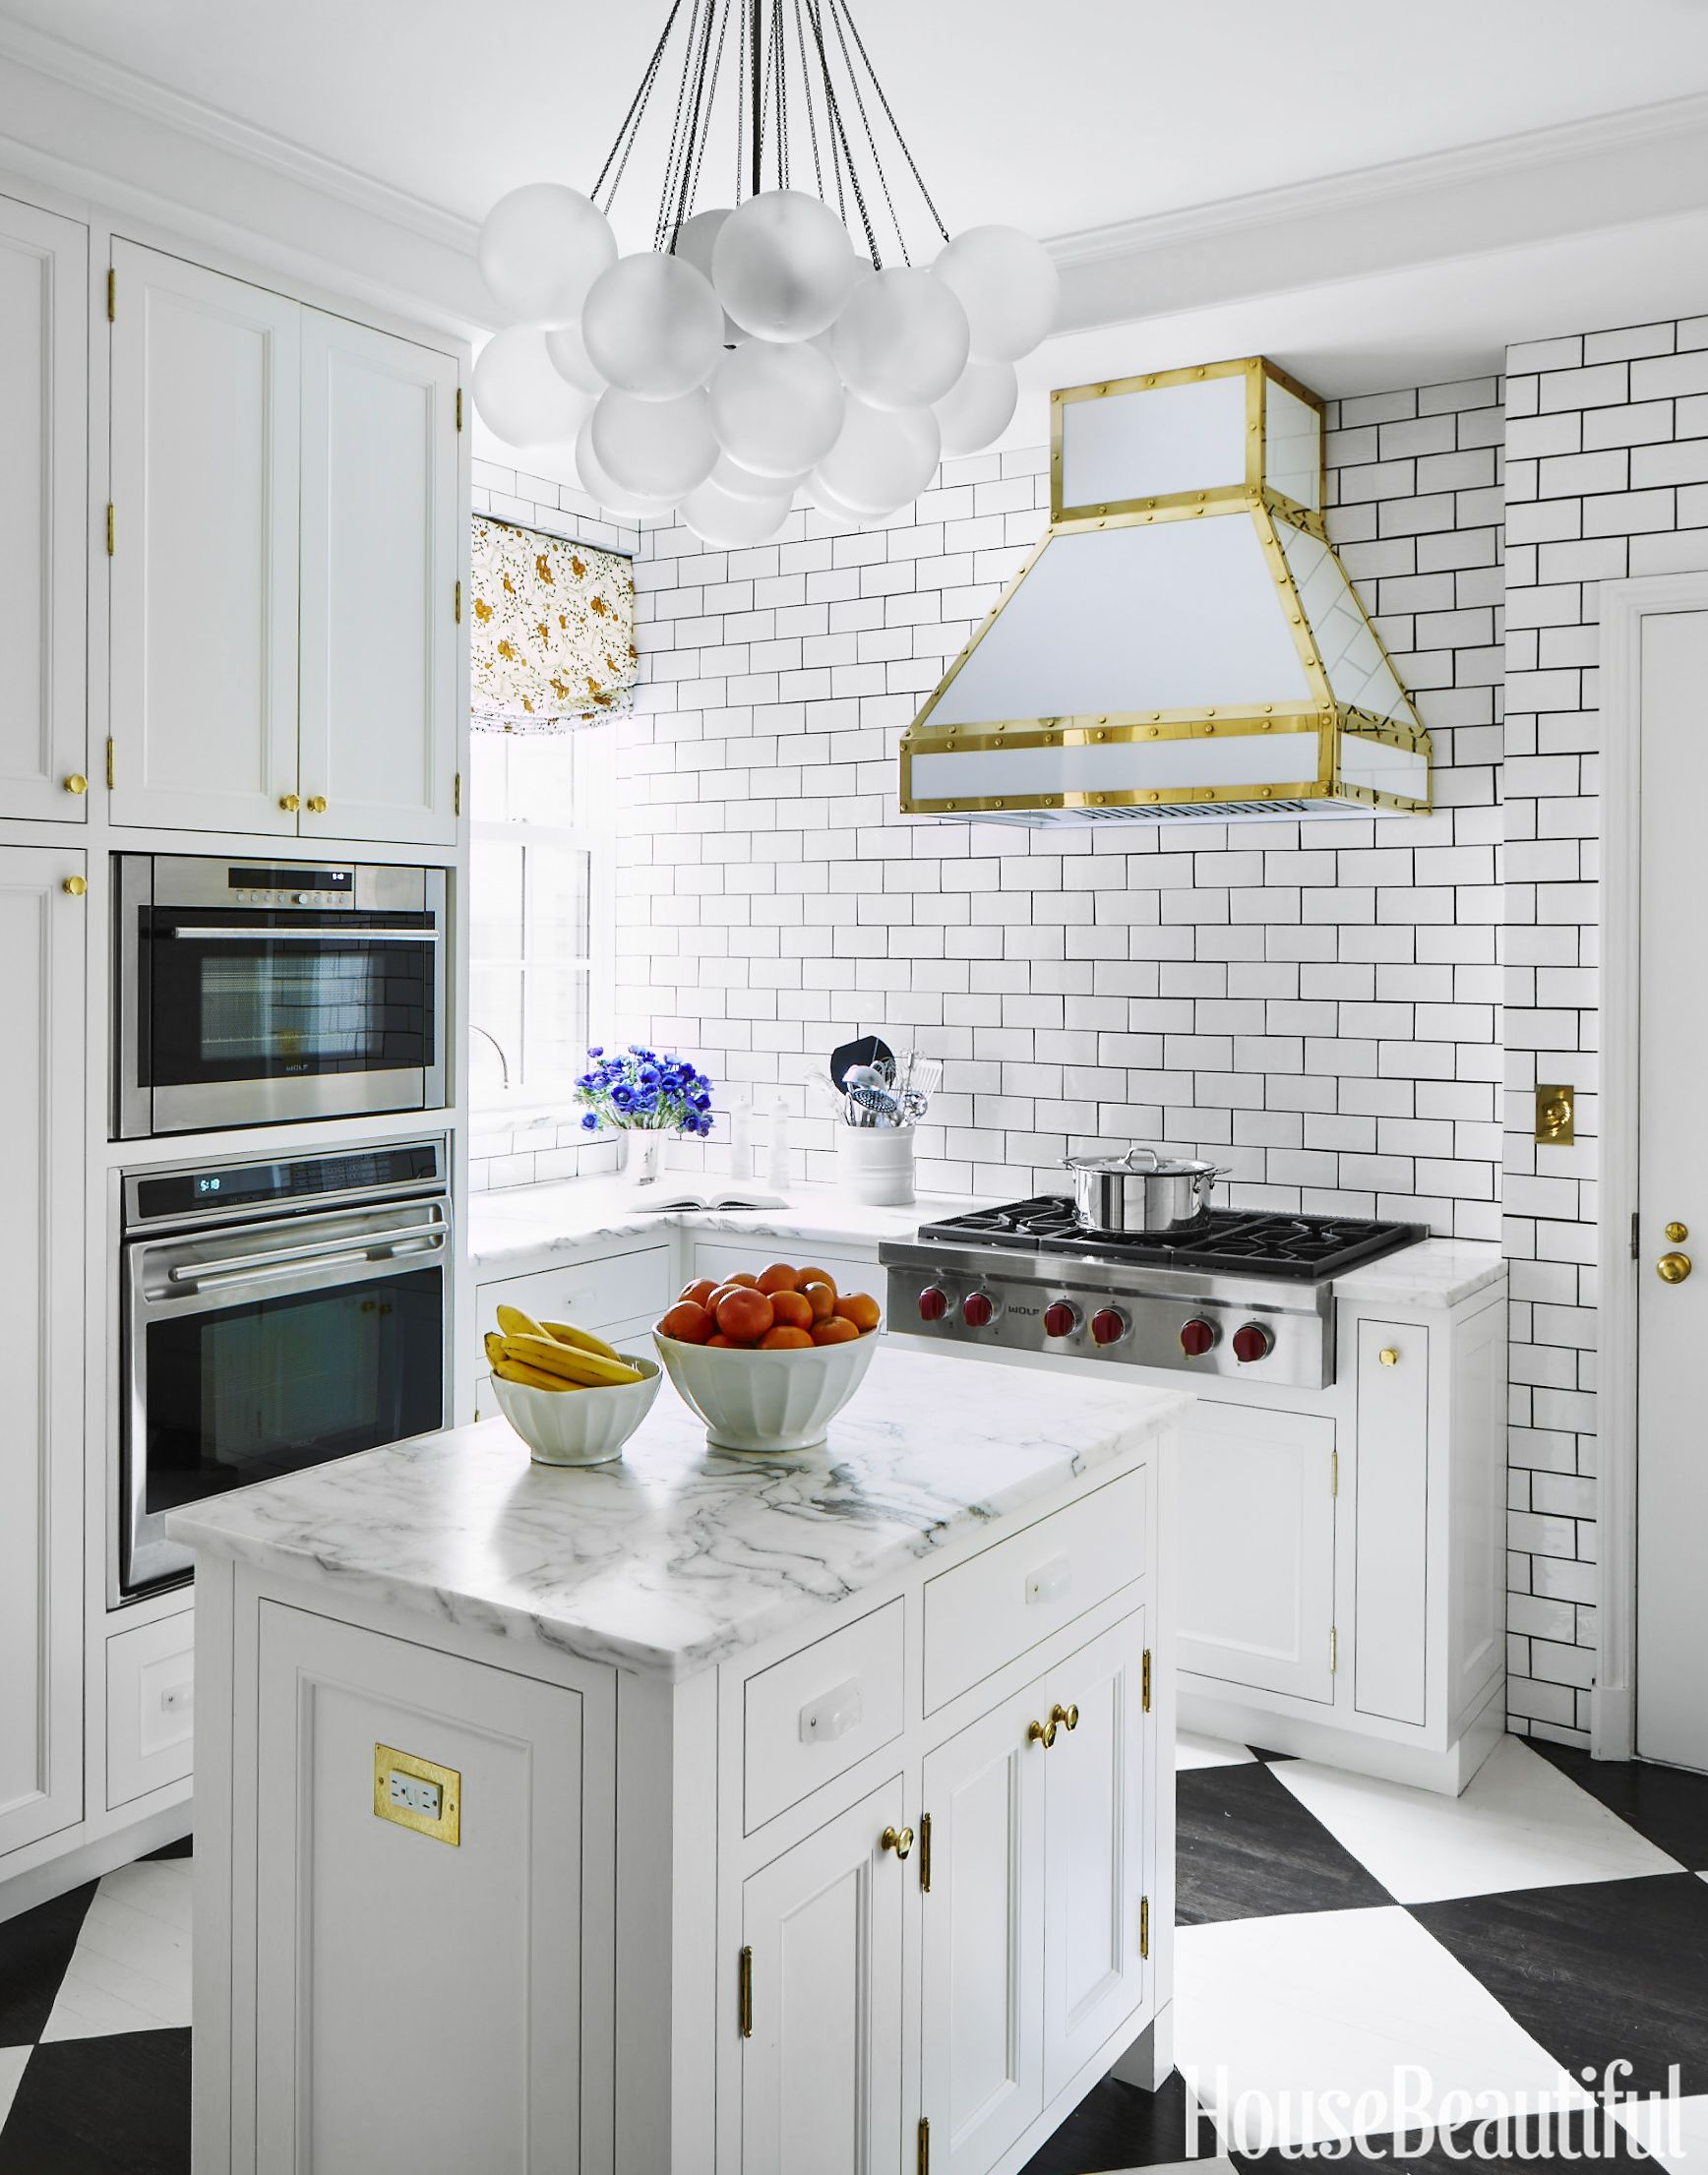 40+ Best Small Kitchen Design Ideas - Decor Solutions for Small Kitchens